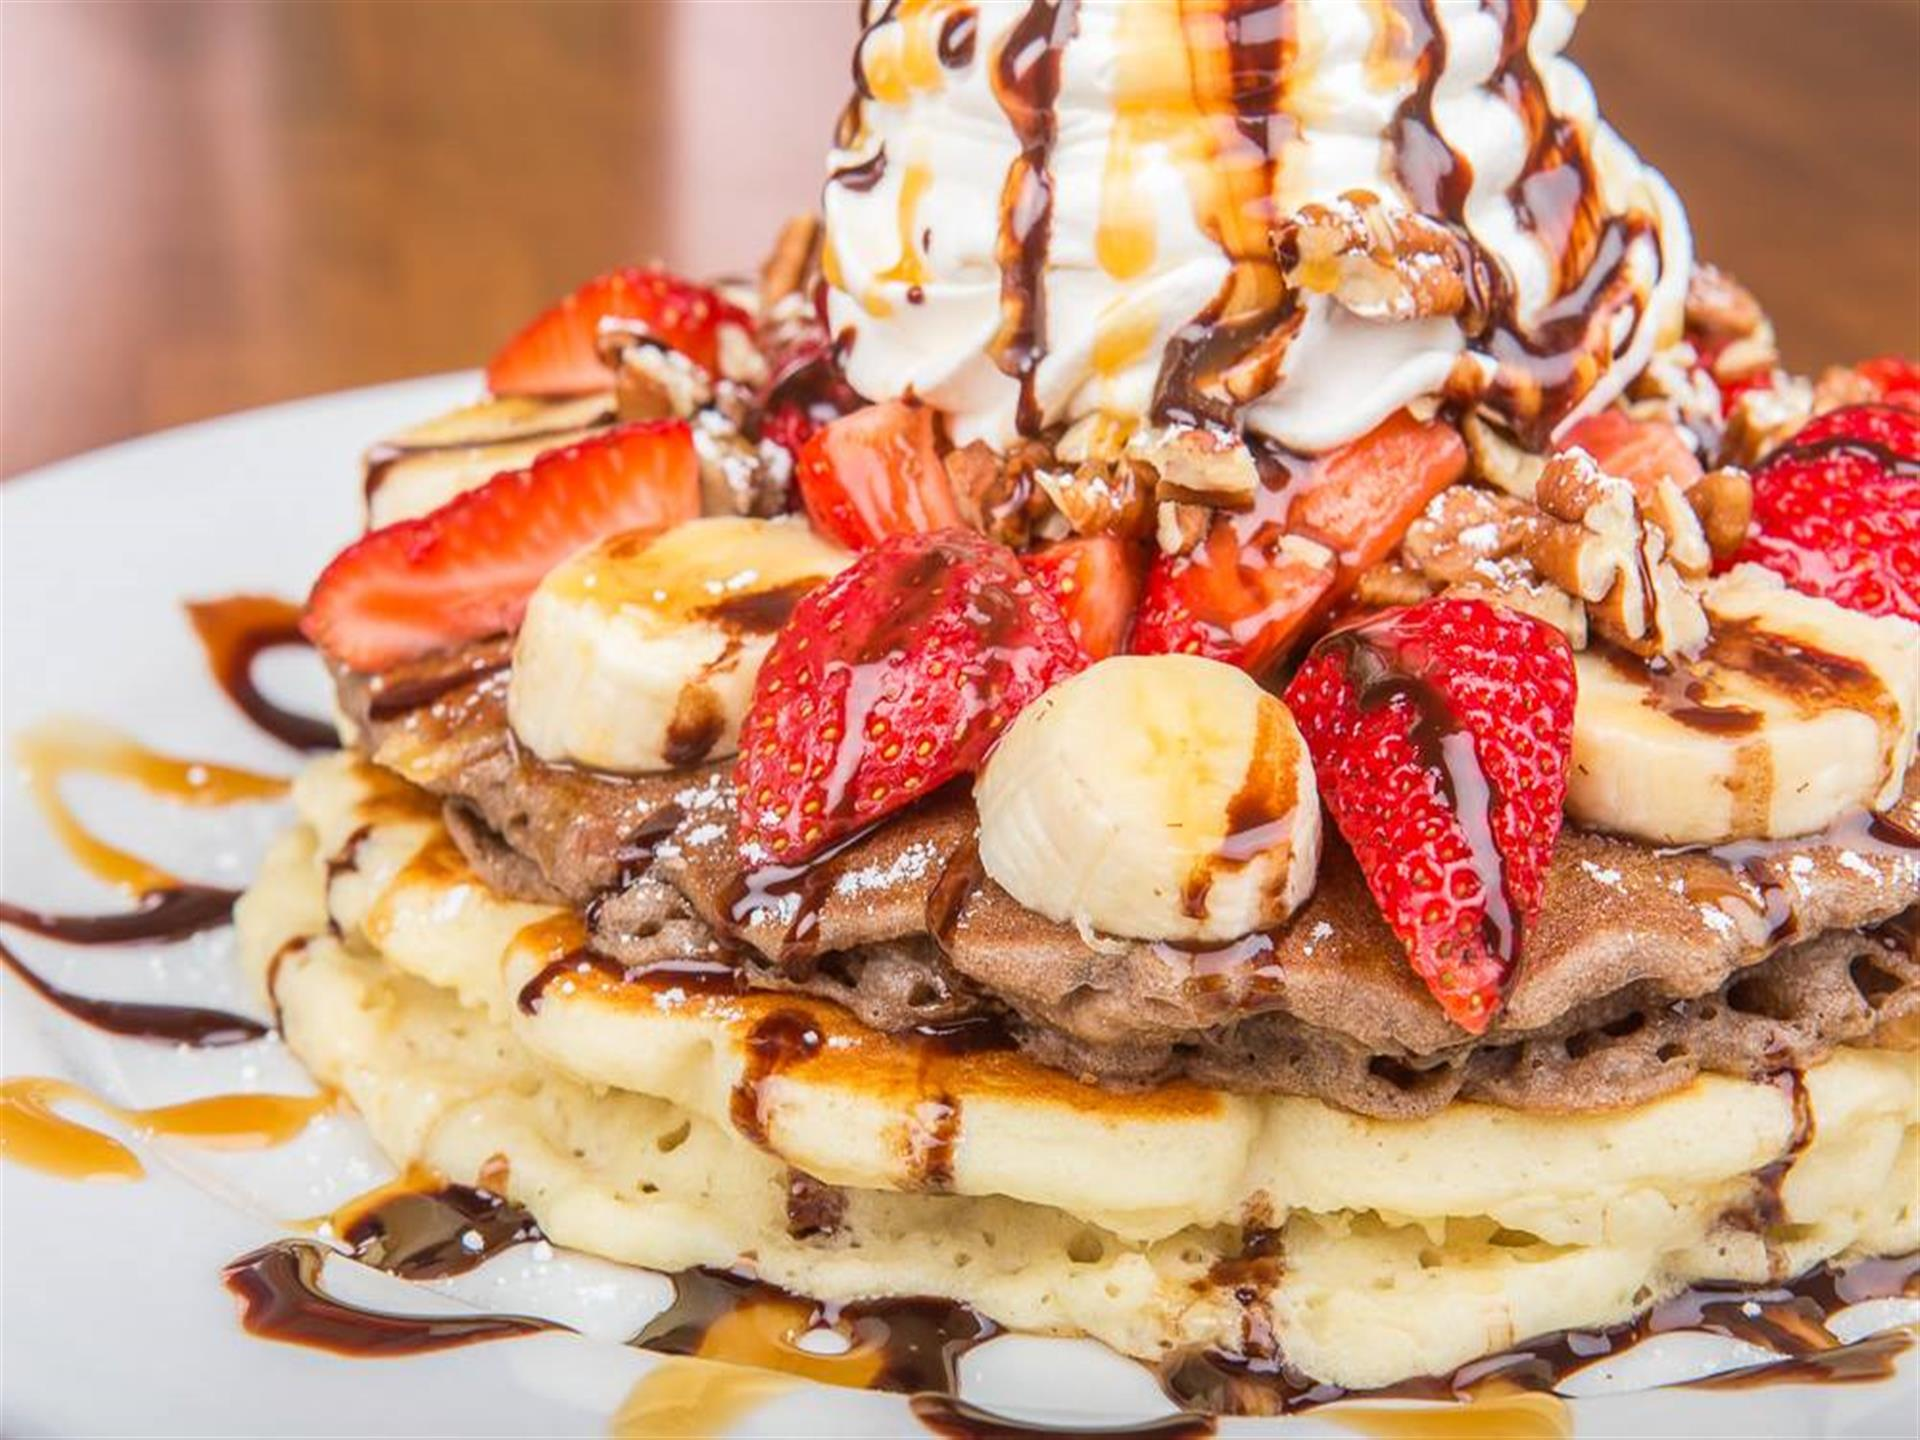 Stack of pancakes topped with strawberries, bananas, whipped cream, maple syrup and chocolate syrup.